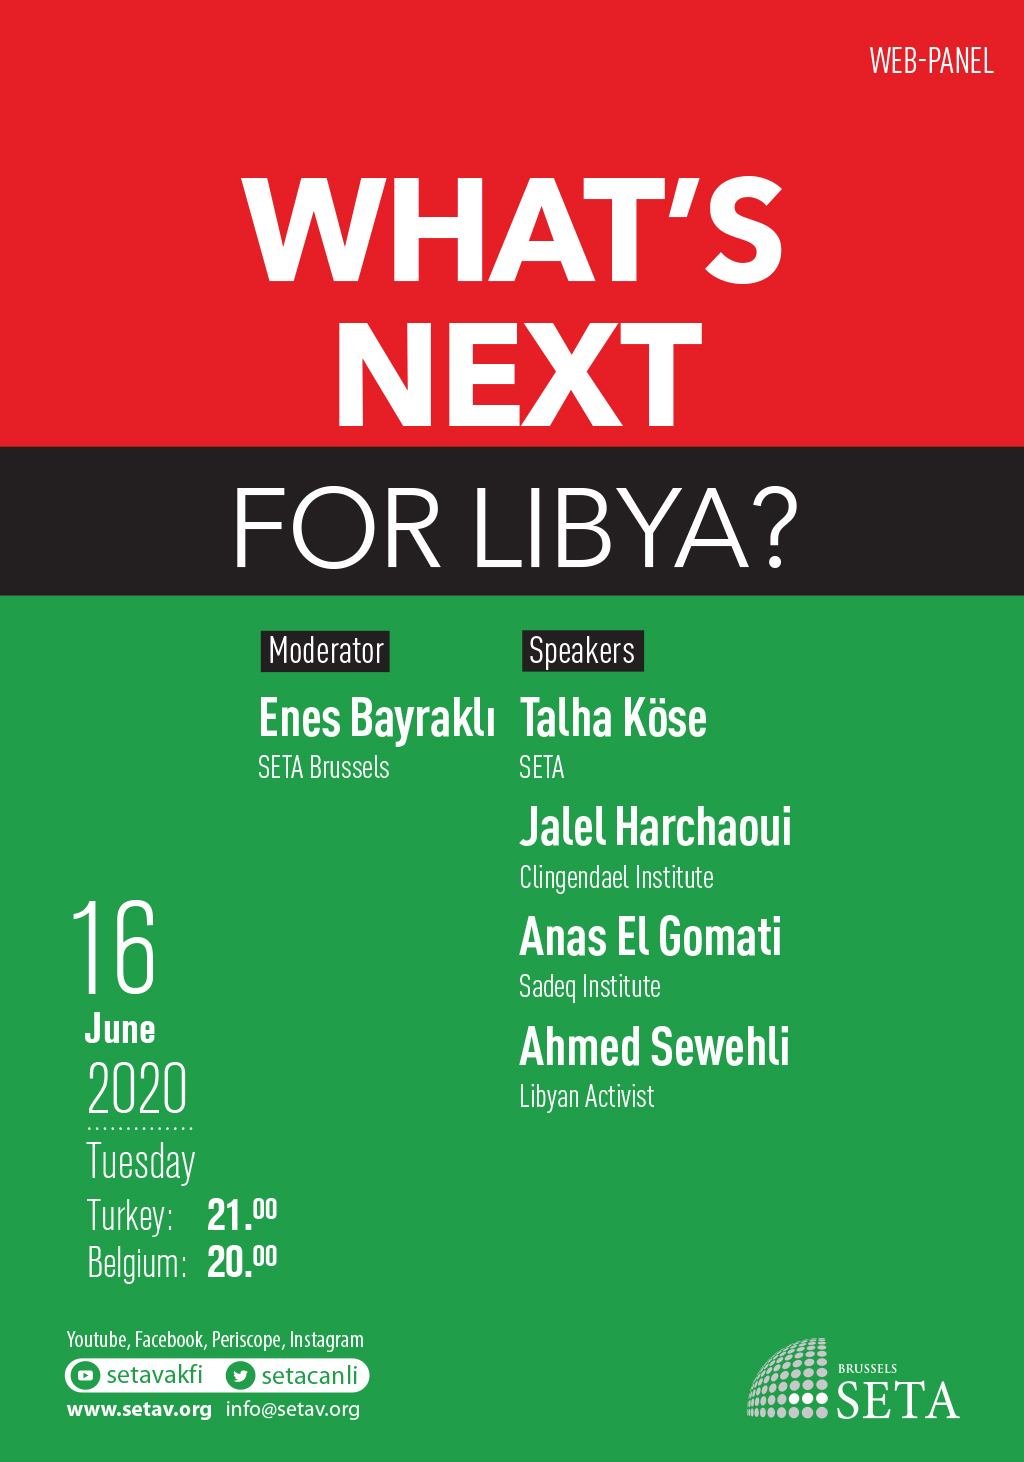 Web Panel: What's next for Libya?